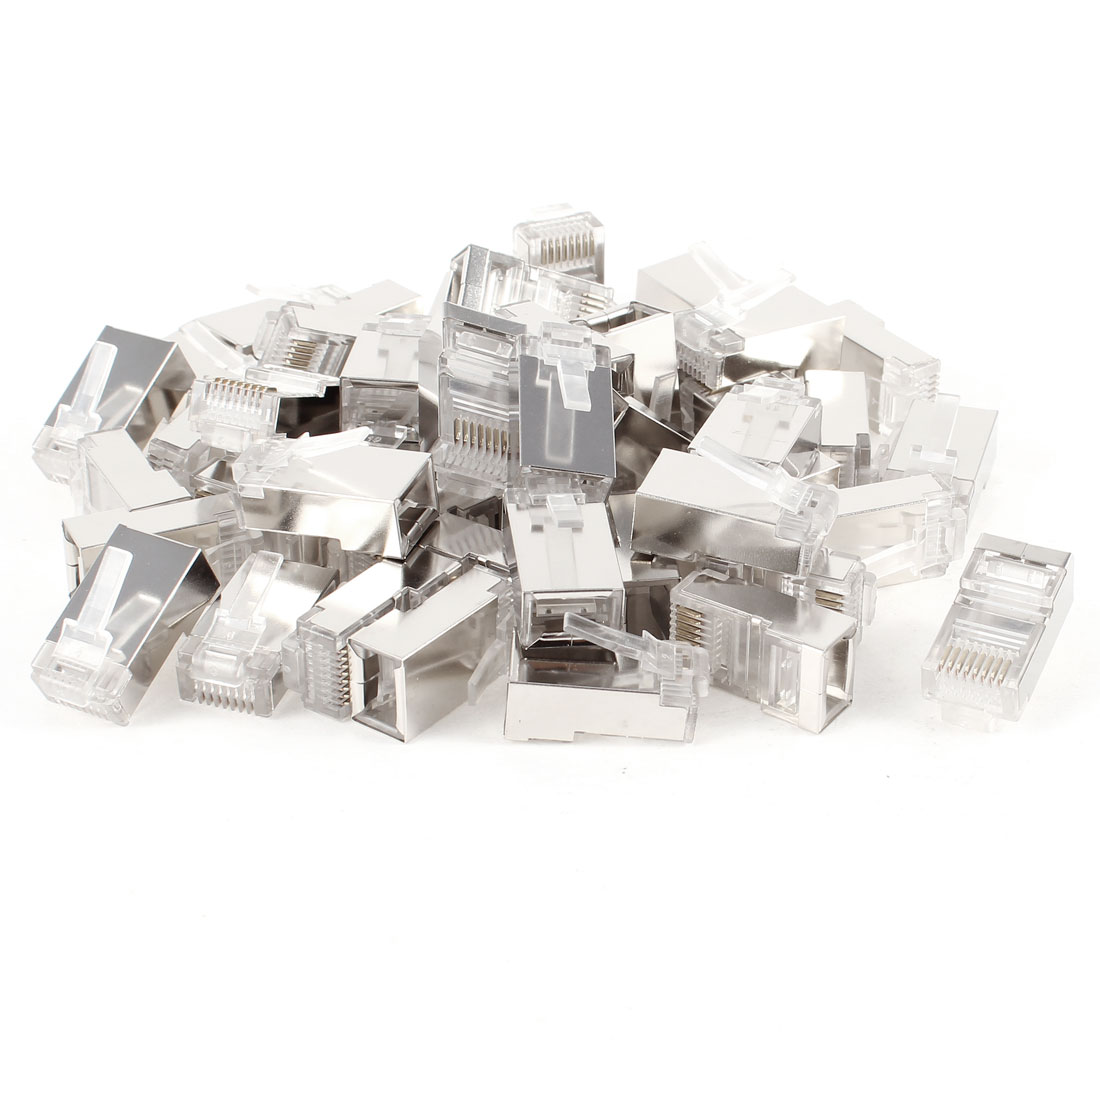 50 Pcs Metal Housing Shielded RJ45 8P8C Male Modular Network Jack